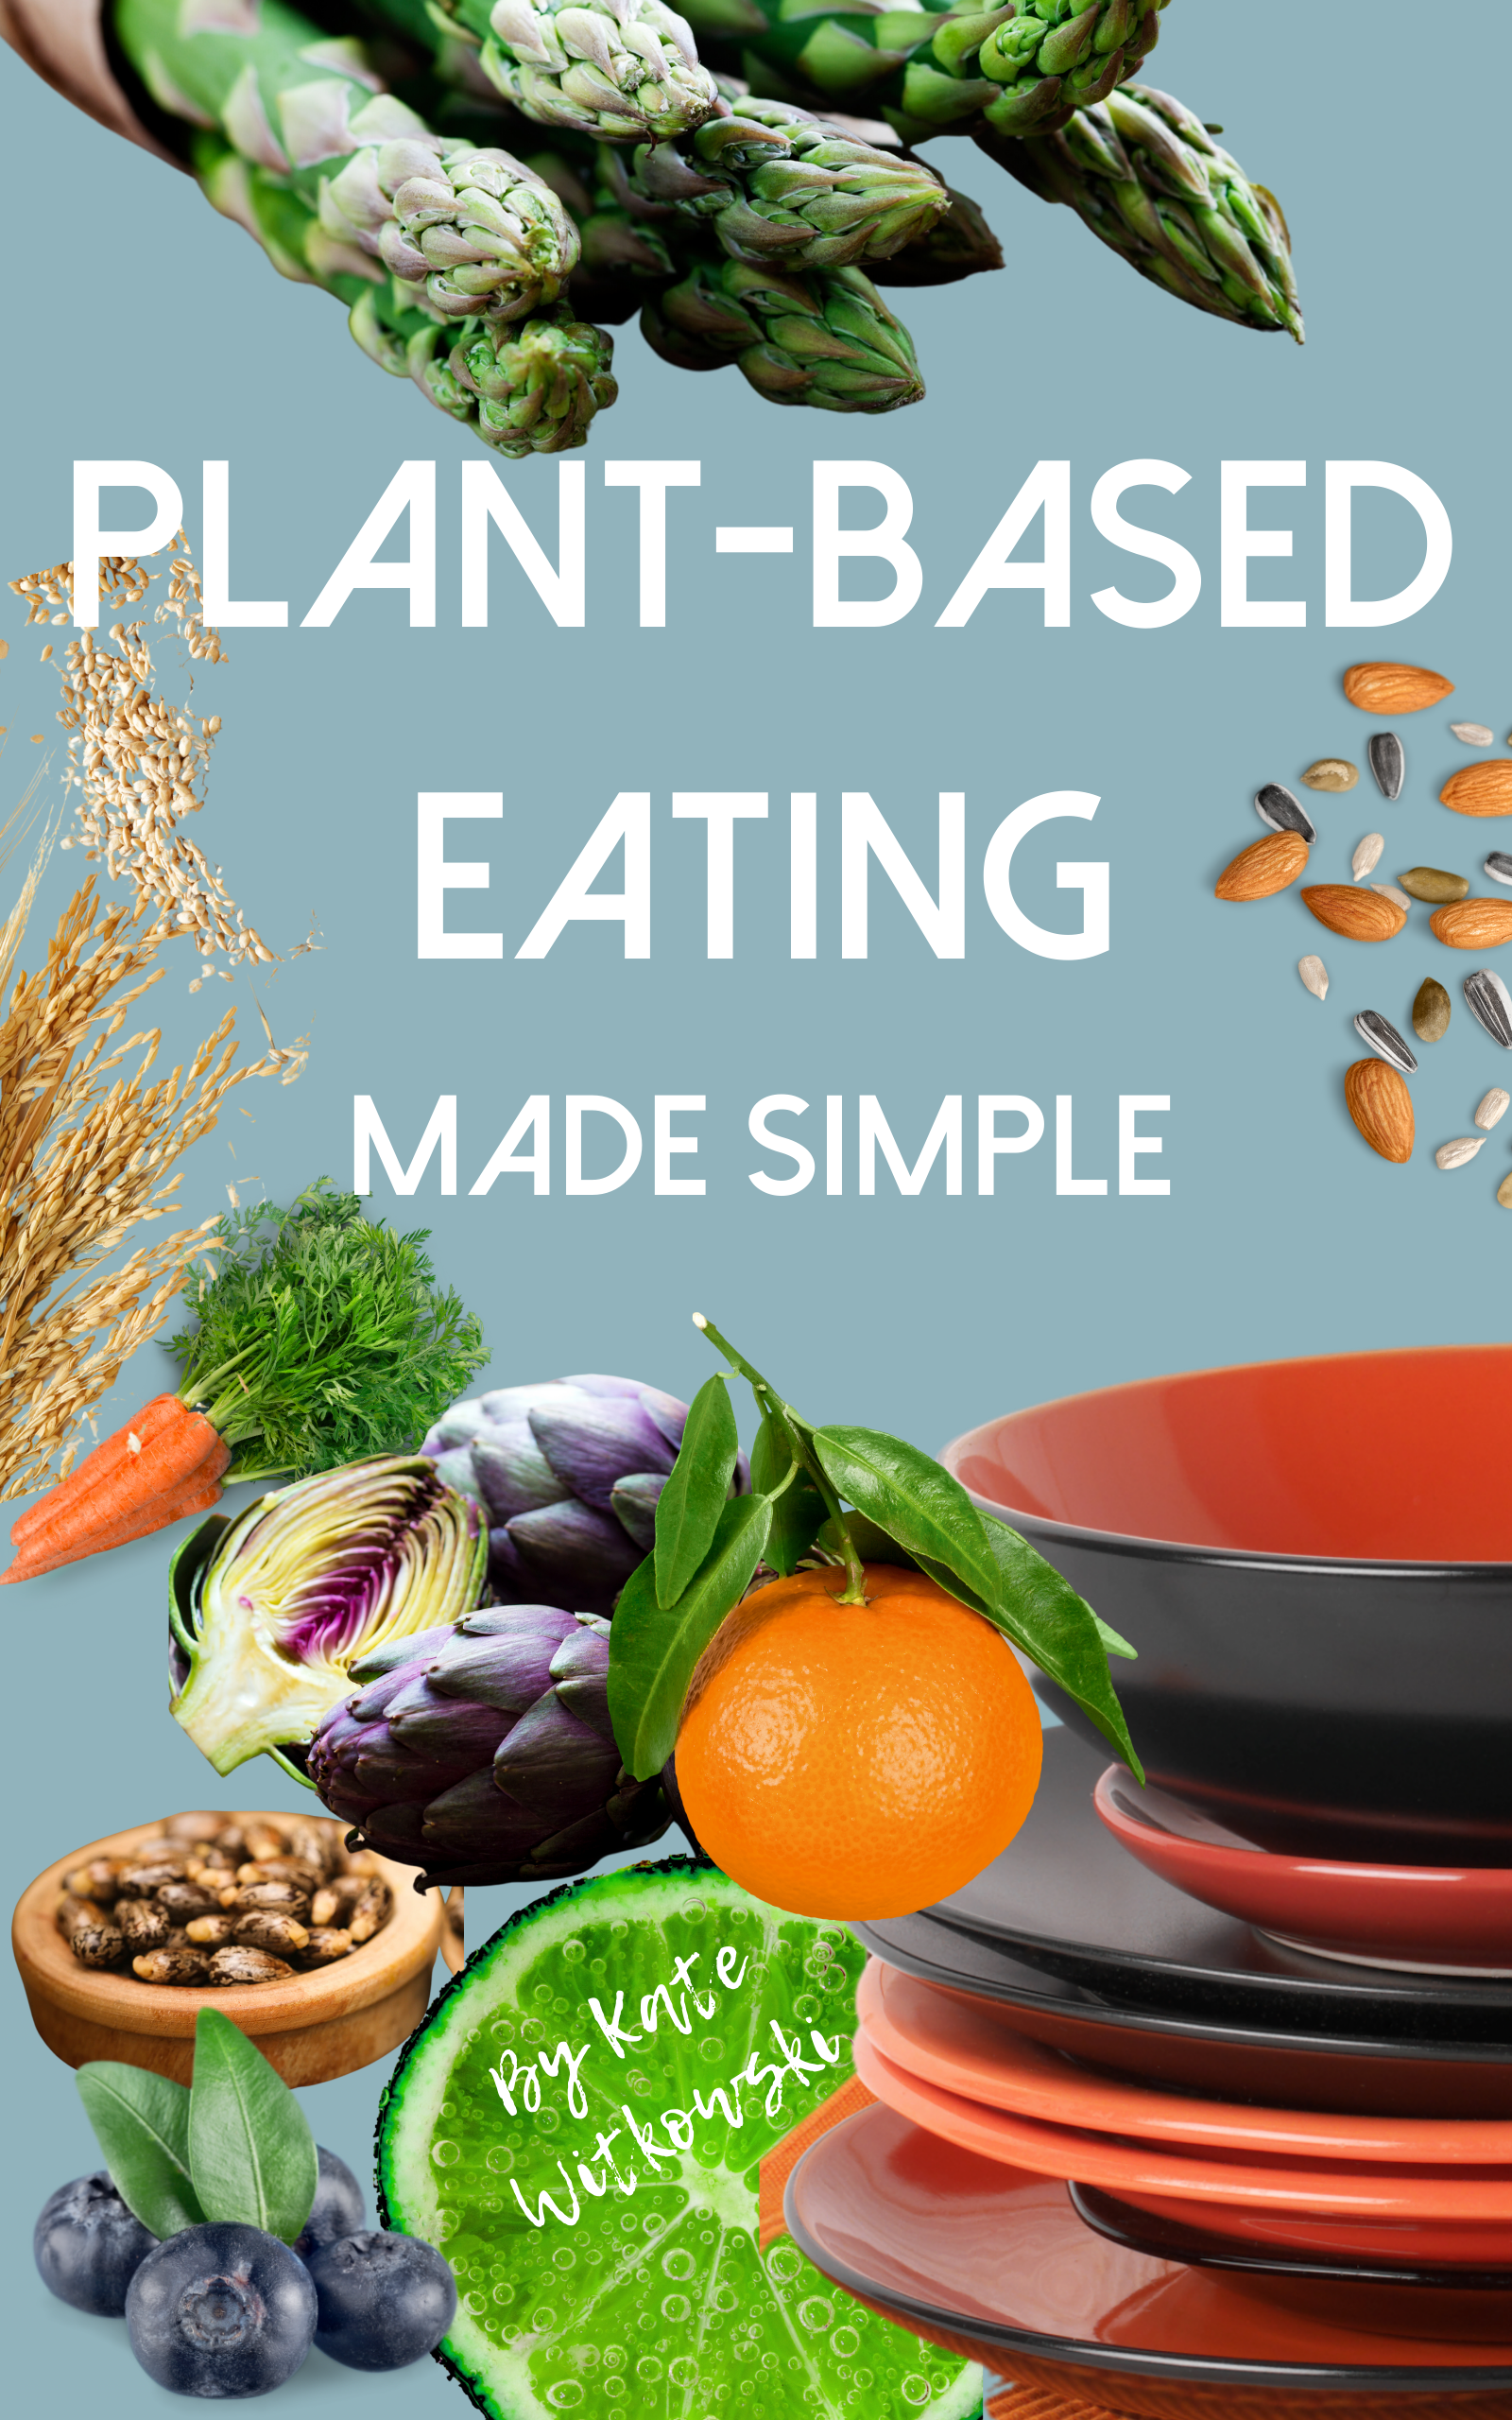 Plant-Based Eating Made Simple